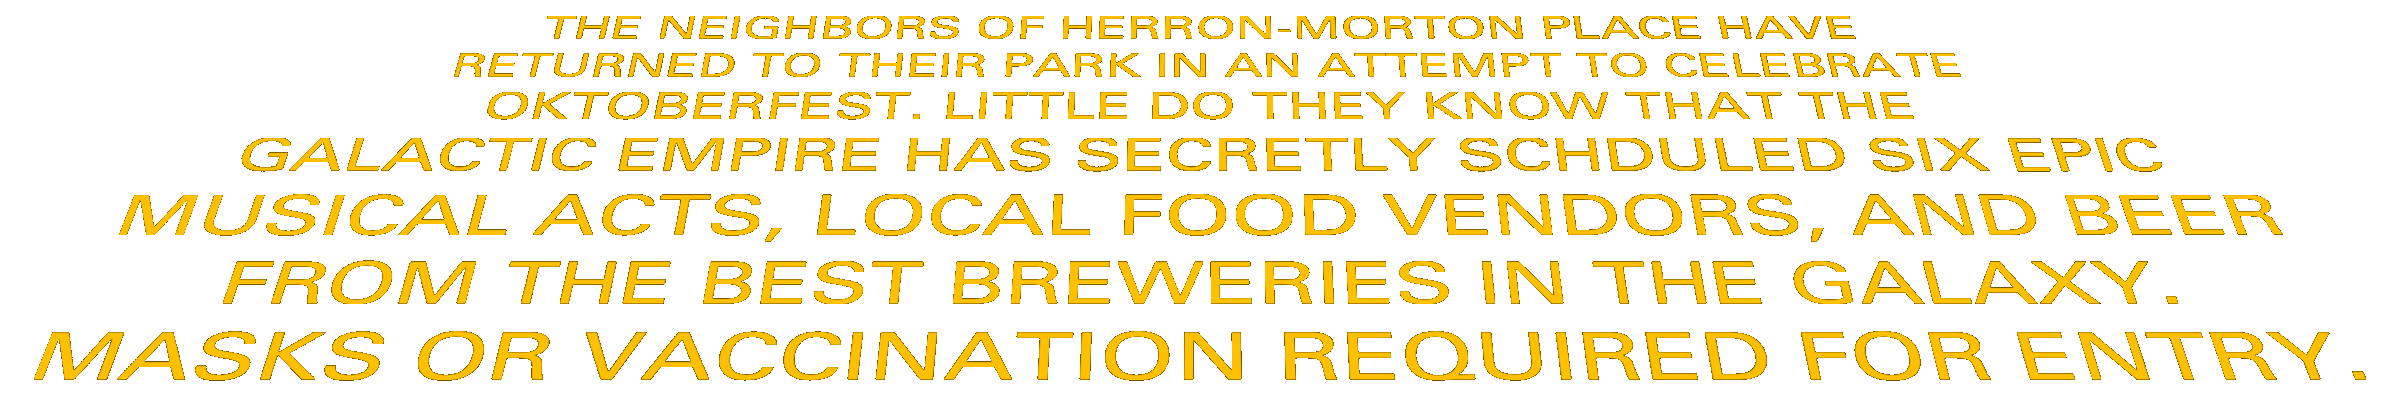 THE NEIGHBORS OF HERRON-MORTON PLACE HAVE RETURNED TO THEIR PARK IN AN ATTEMPT TO CELEBRATEOKTOBERFEST. LITTLE DO THEY KNOW THAT THEGALACTIC EMPIRE HAS SECRETLY SCHDULED SIX EPICMUSICAL ACTS, LOCAL FOOD VENDORS, AND BEERFROM THE BEST BREWERIES IN THE GALAXY.MASKS OR VACCINATION REQUIRED FOR ENTRY.